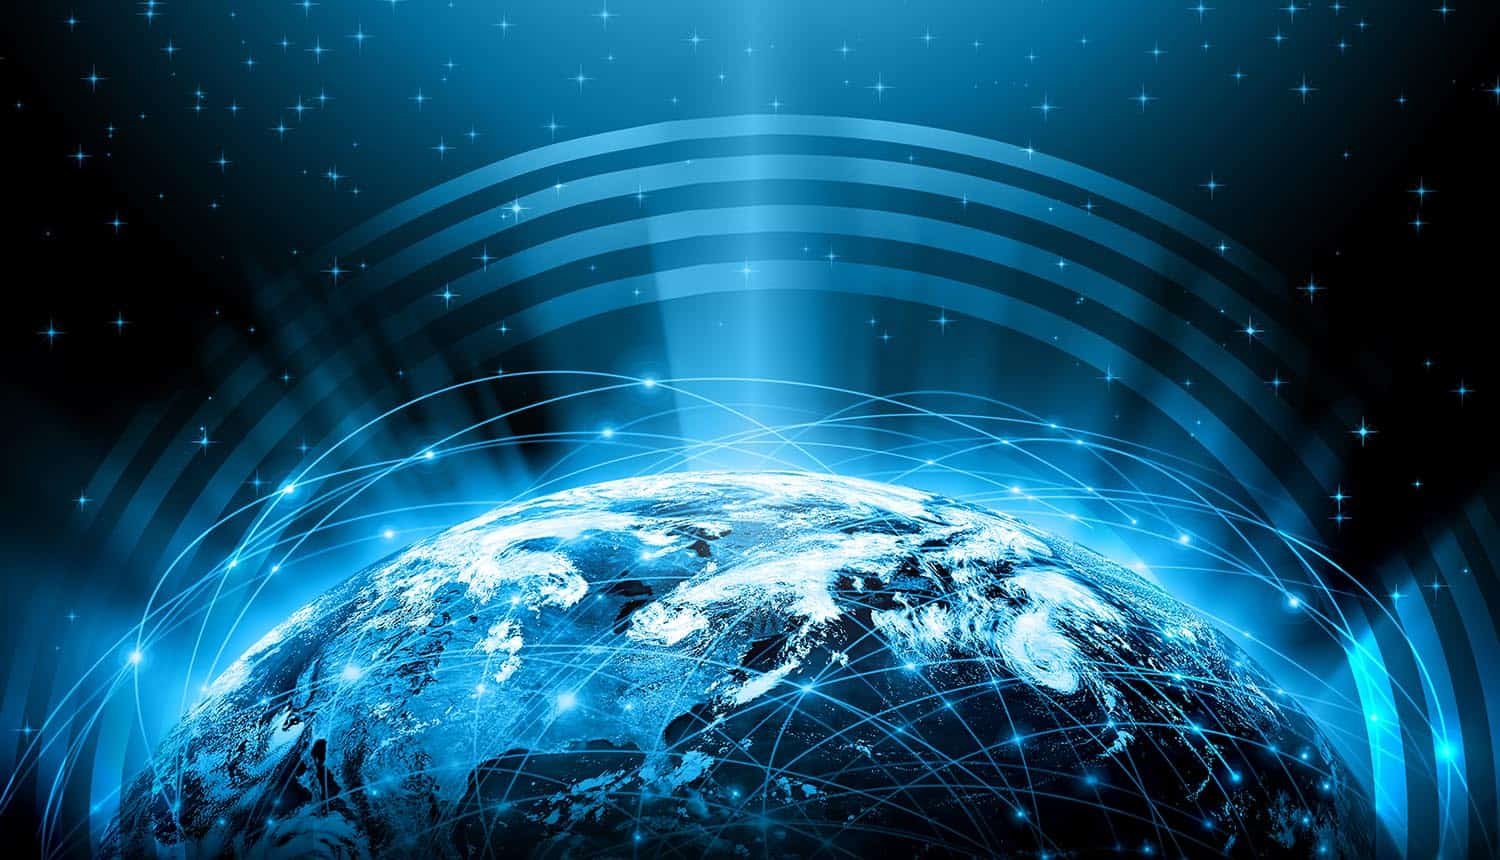 Globe with glowing lines on technological background showing how Contract for the Web aims to create a better internet